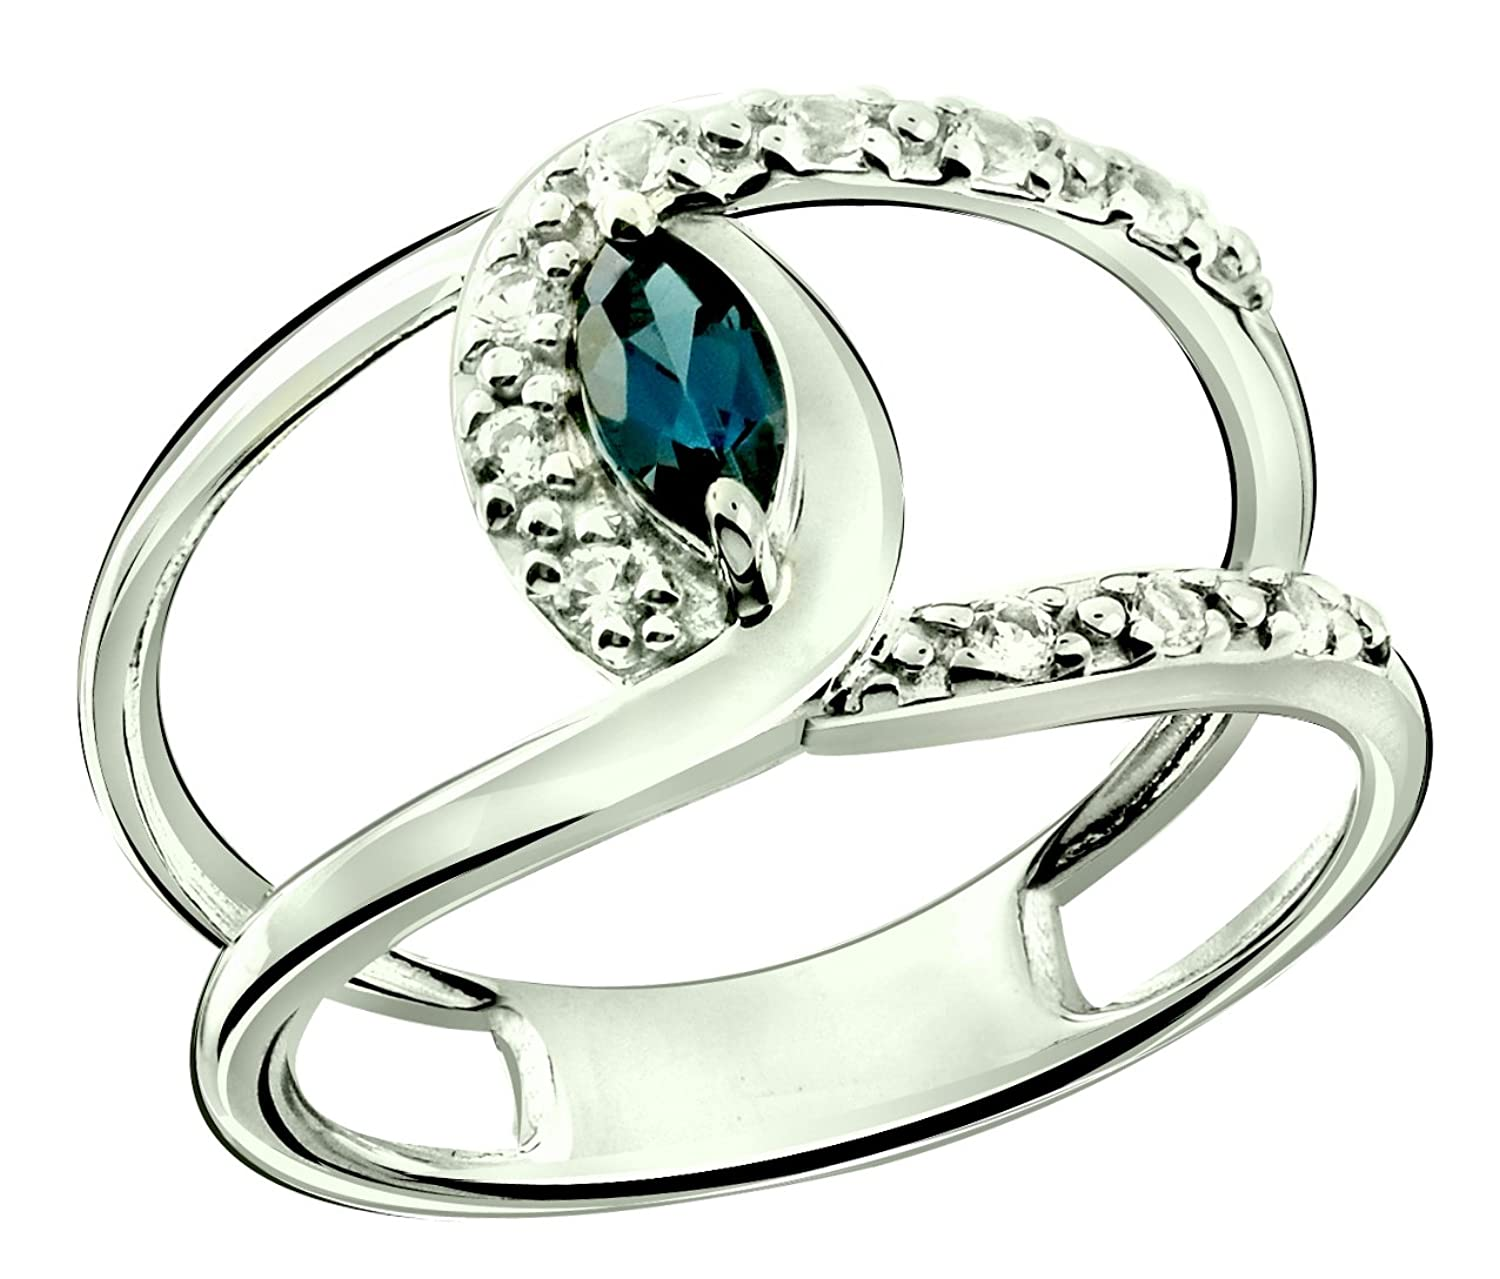 Sterling Silver 925 Ring LONDON BLUE TOPAZ and WHITE TOPAZ 0.47 Carat with Rhodium-Plated Finish